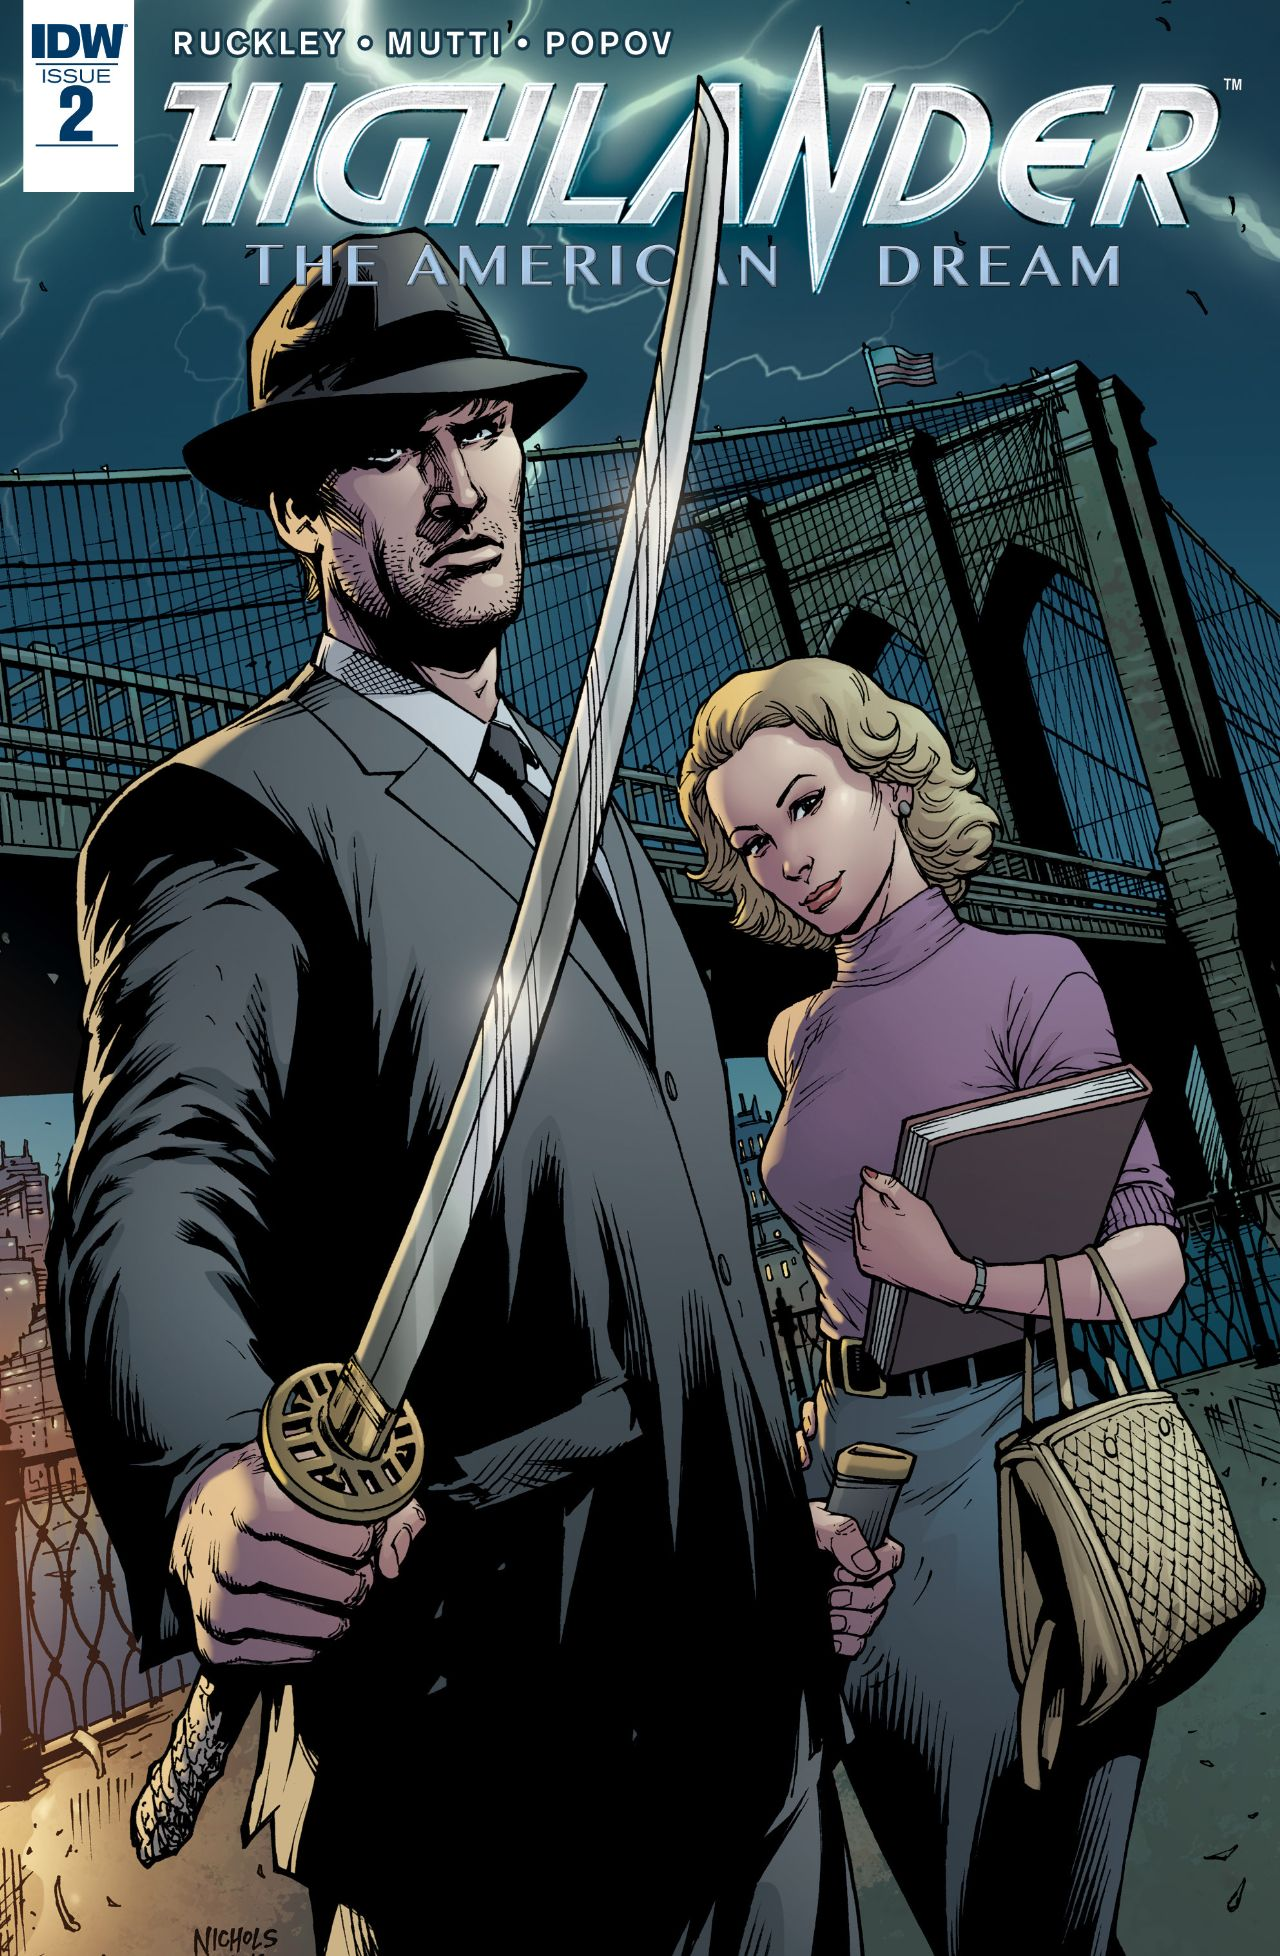 Highlander 1 2 Idw Publishing Written By Brian Ruckley Art Andrea Mutti Colors Vladimir Popov Letters Dezi Sienty Edited Denton J Tipton